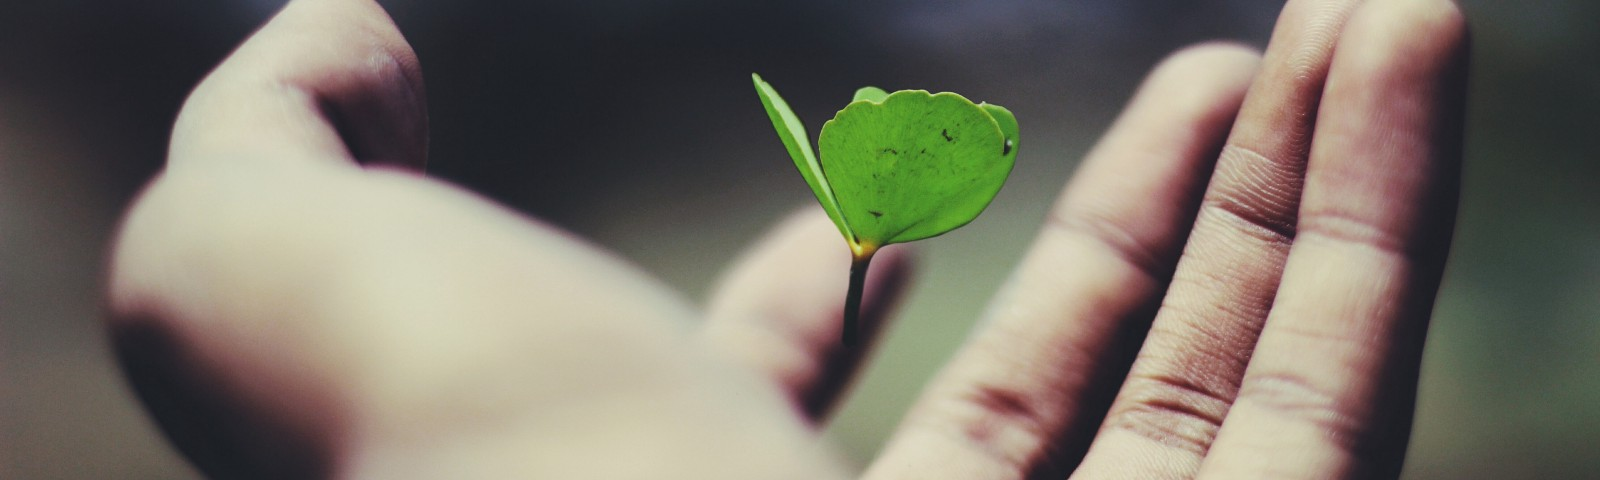 A hand stretches out, holding a small plant